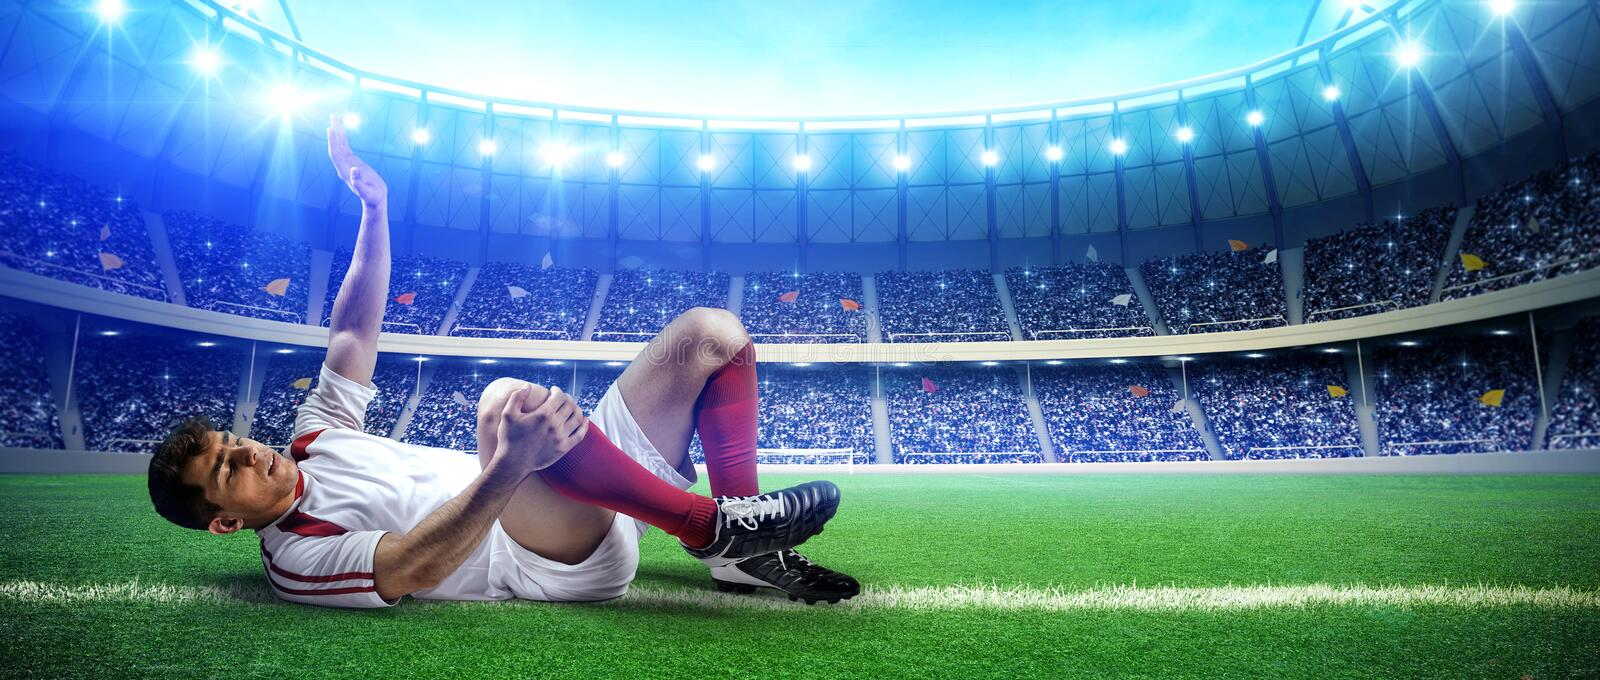 Joueur de football blessé sur le champ de stade photo stock